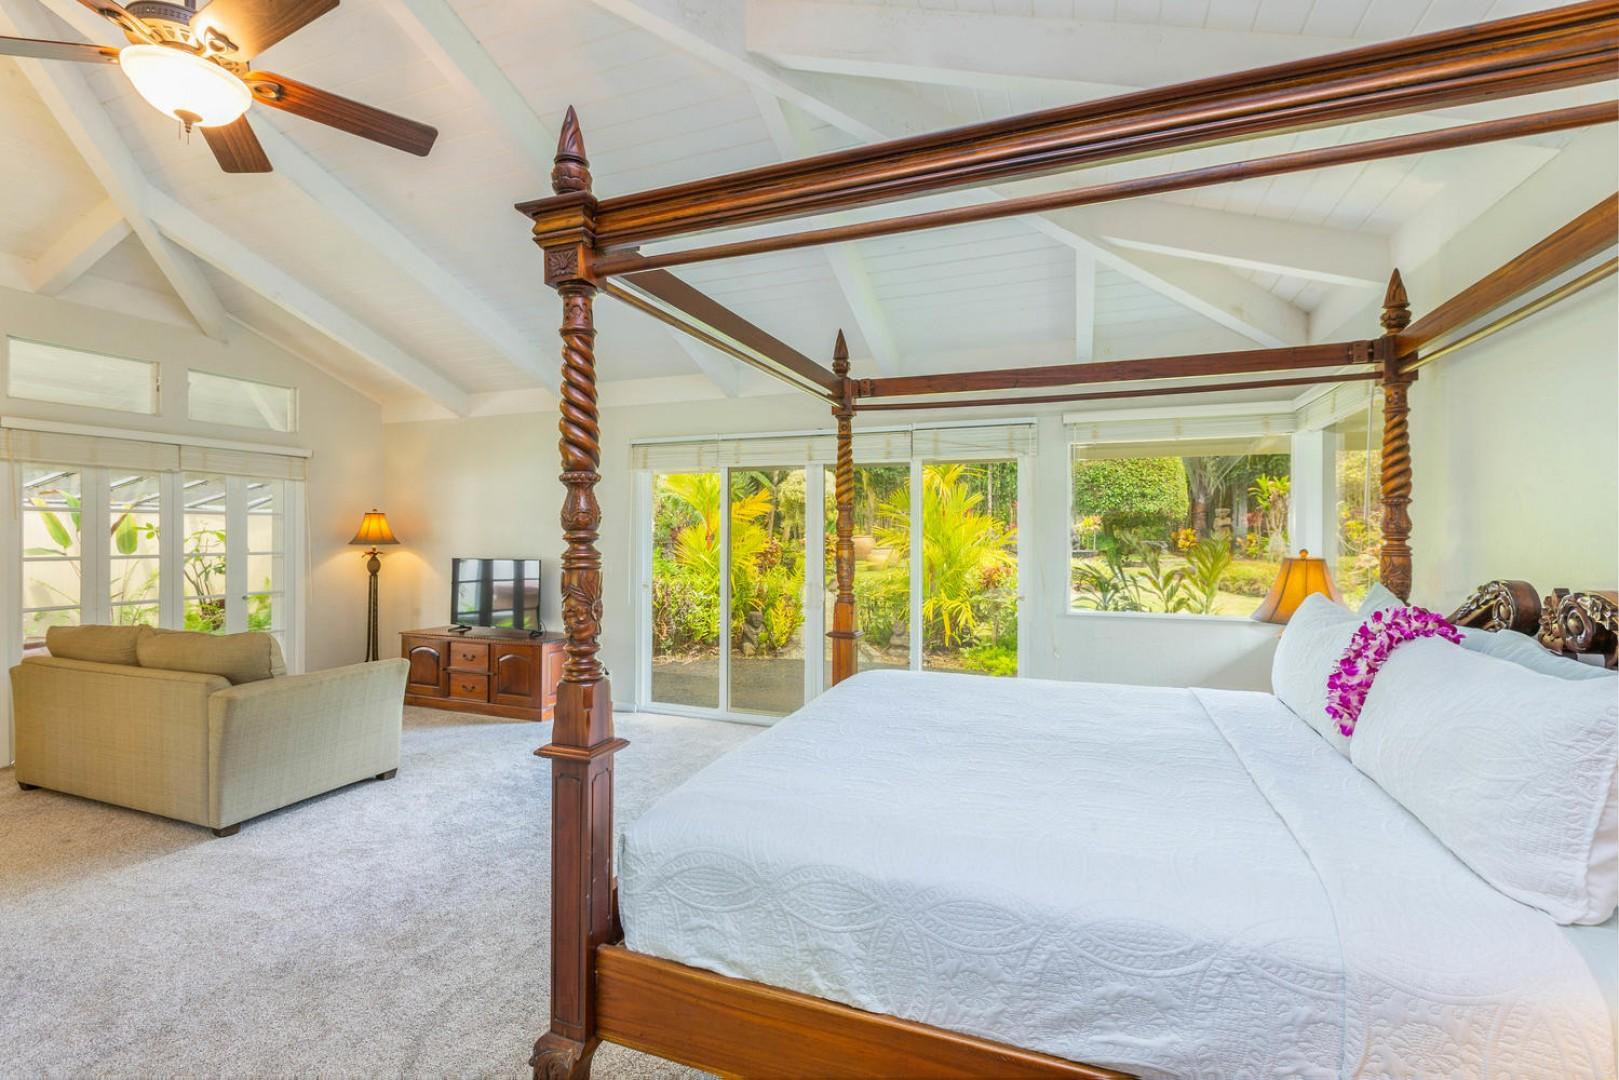 Slip into relaxation mode in the posh master suite